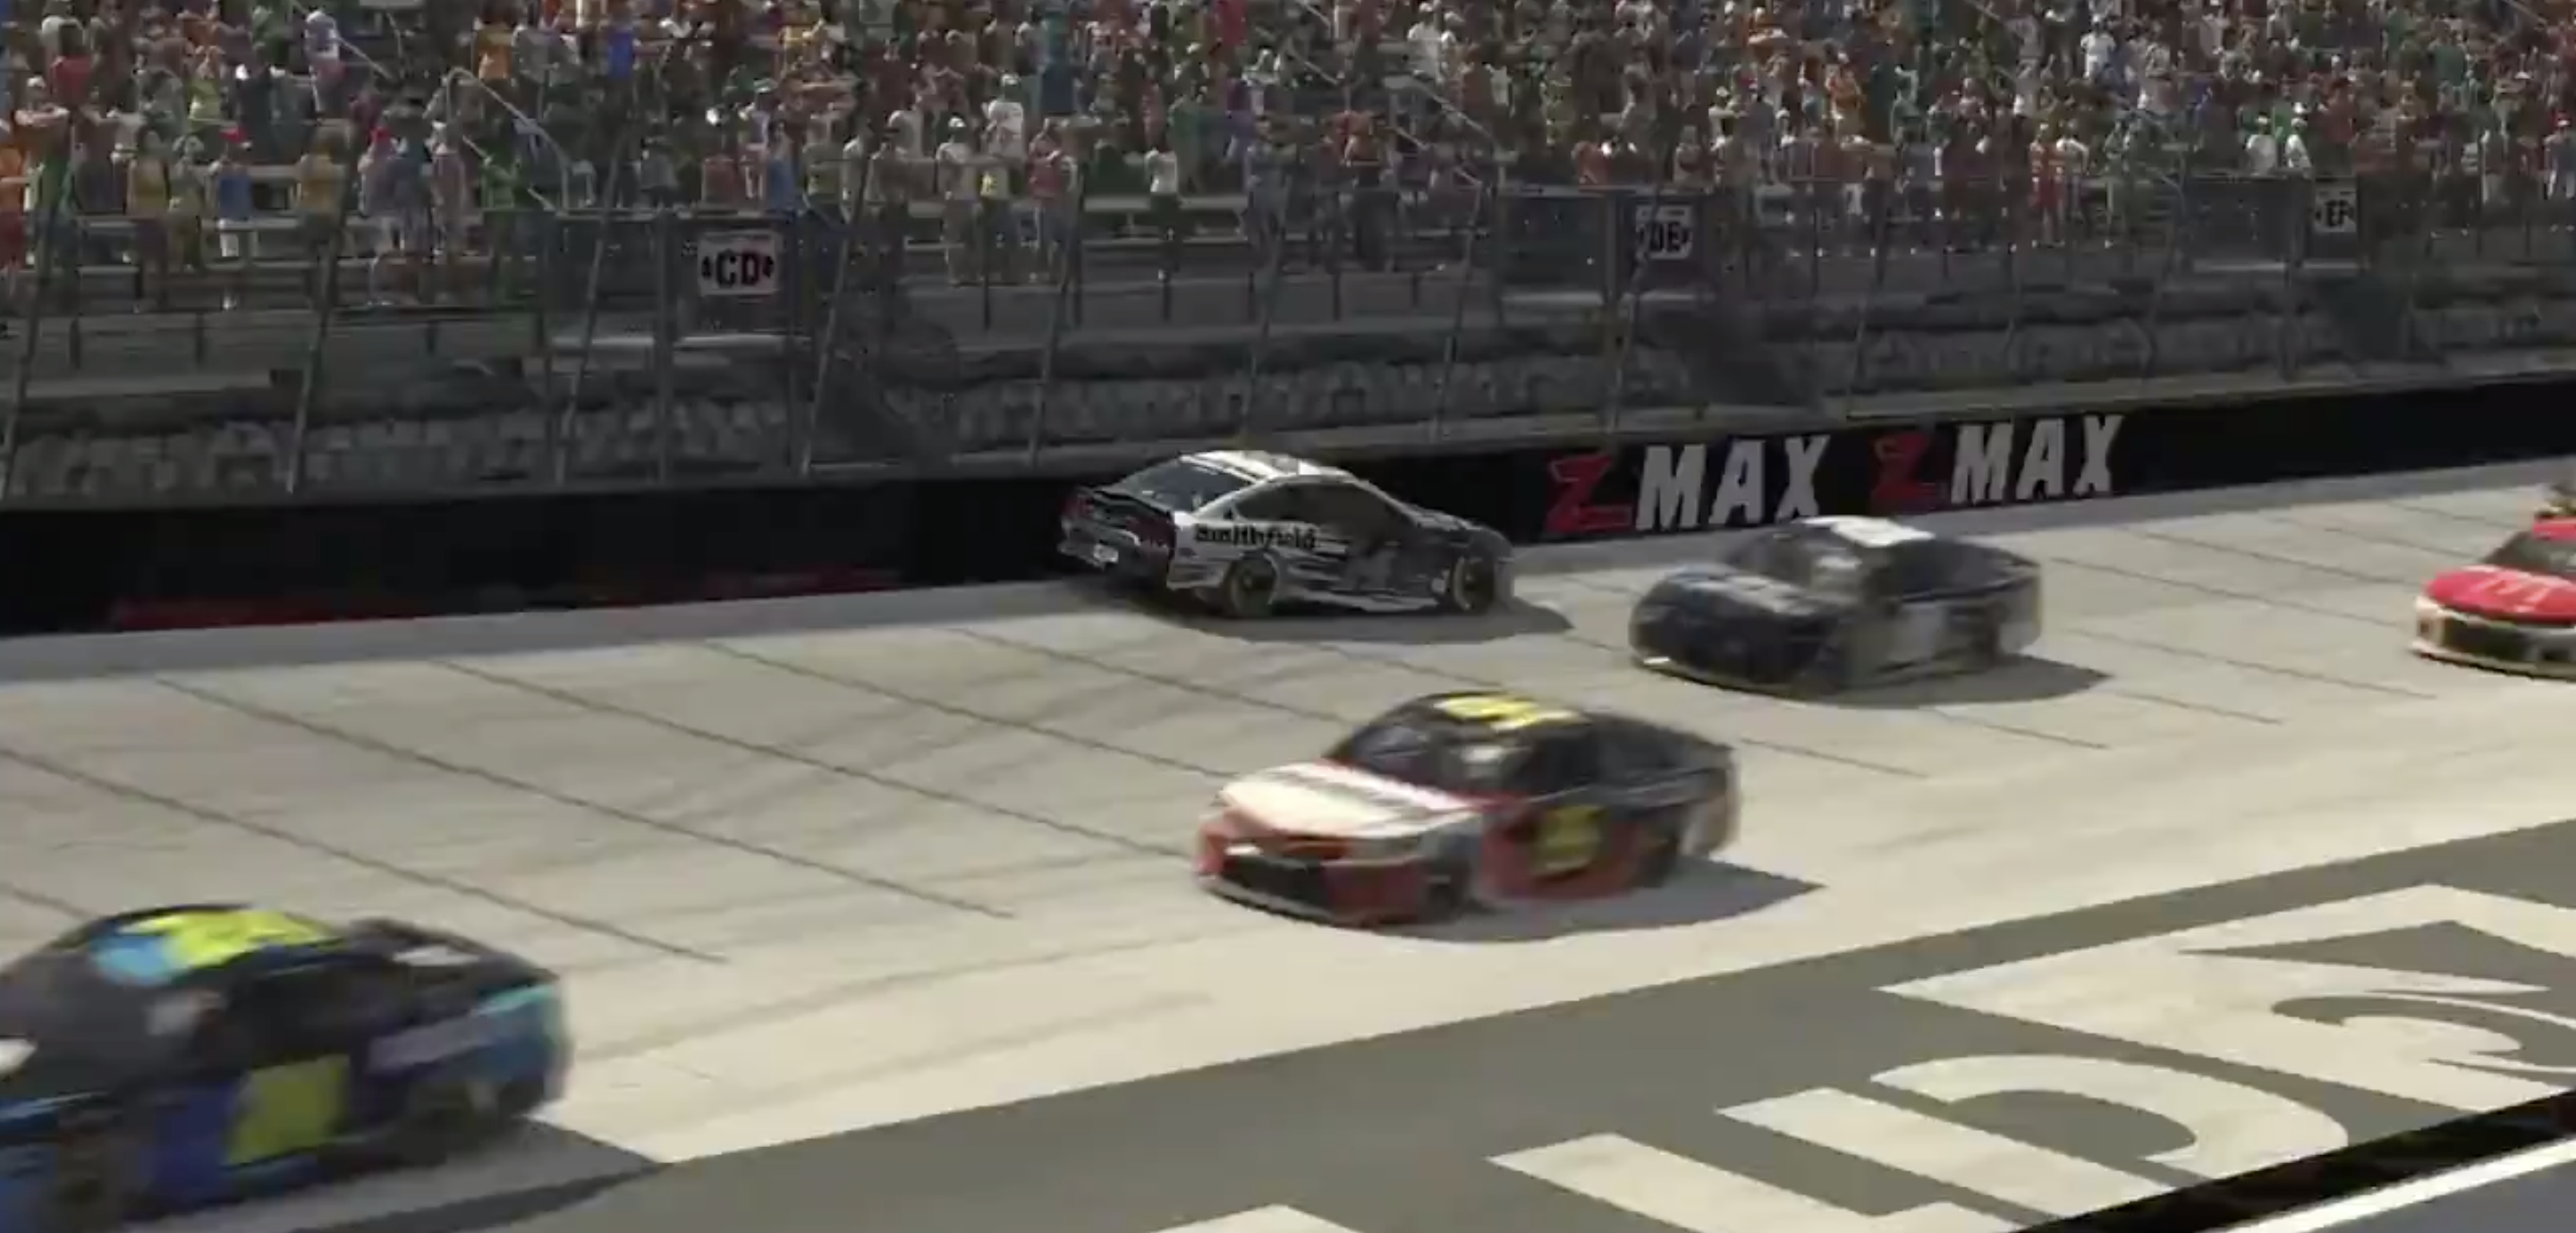 Screenshot of Bubba Wallaces' wrecked car up against the wall and facing backwards on the track during an eNASCAR Pro Invitational series race.